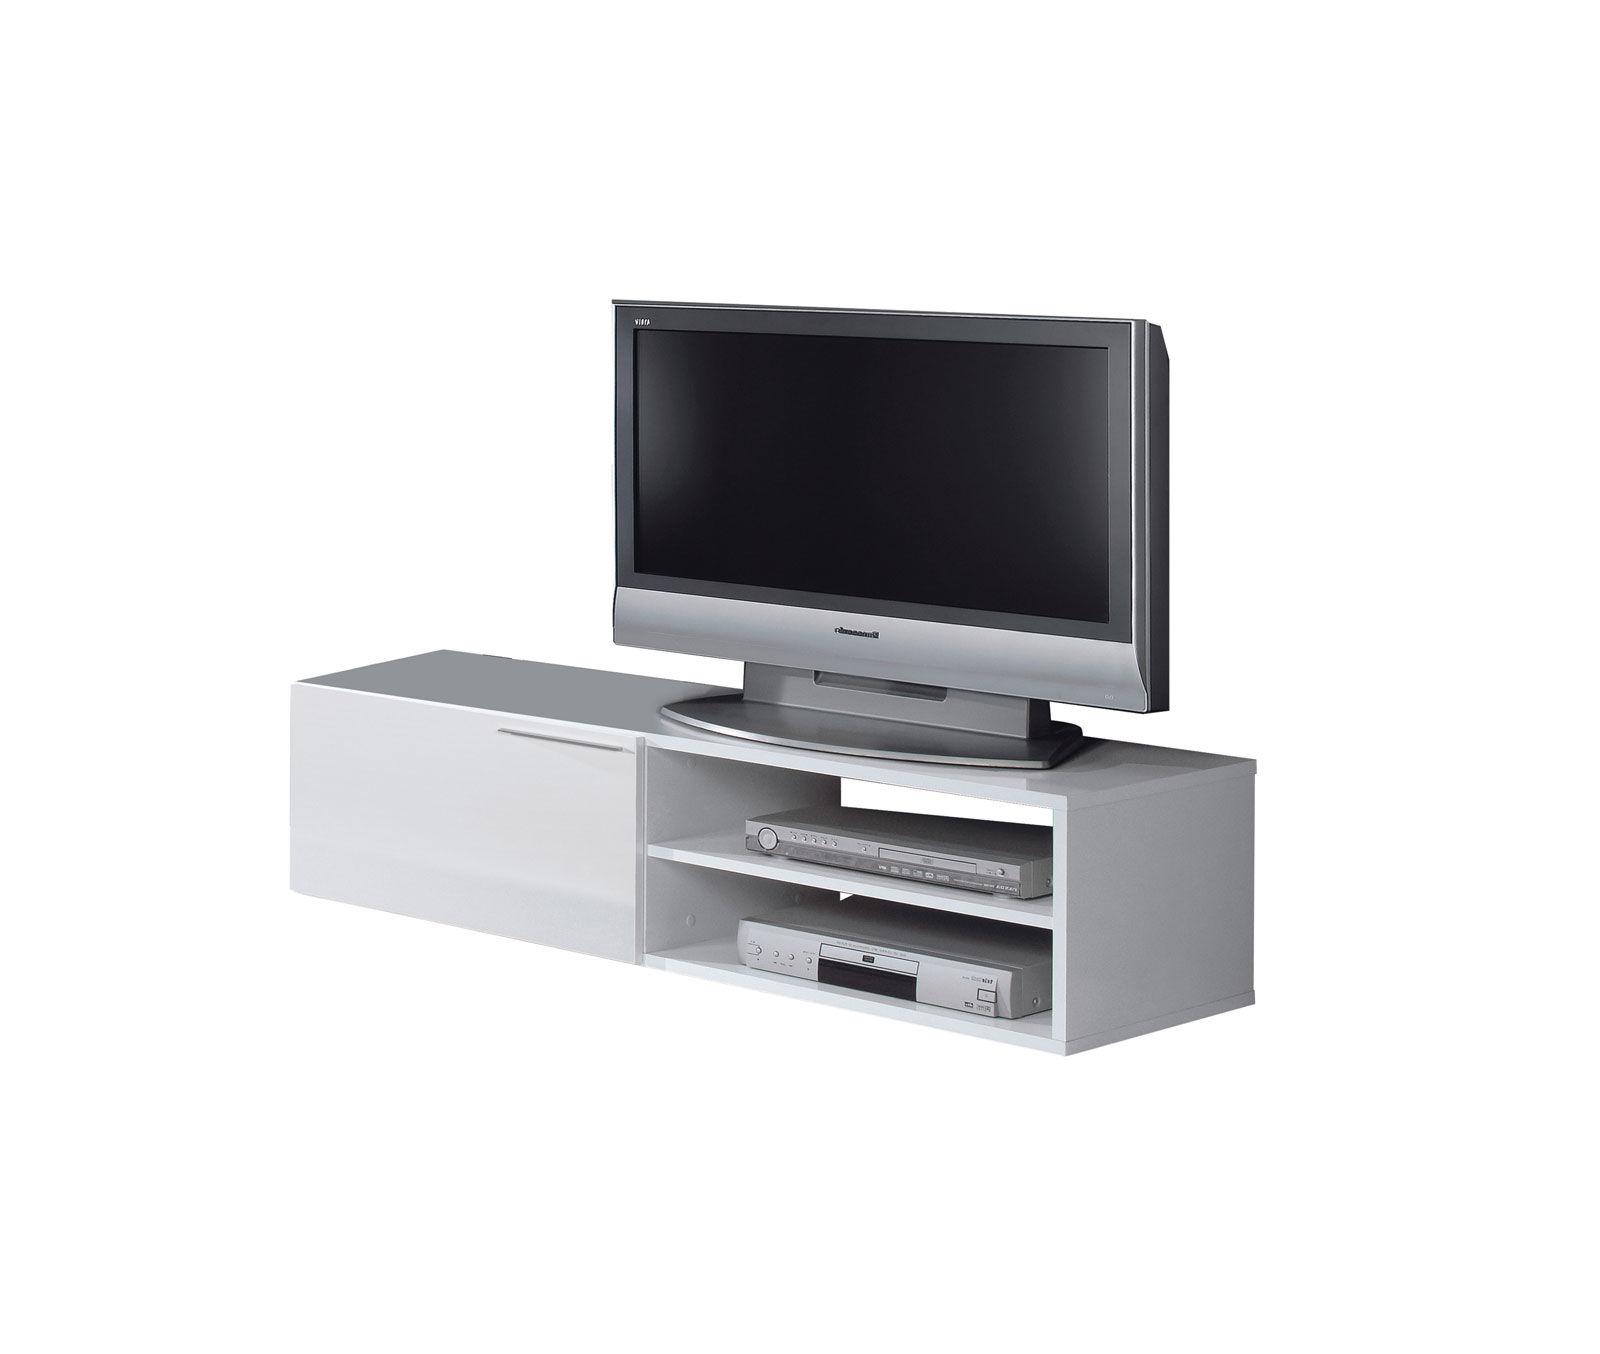 Mueble tv econ mico for Mueble auxiliar tv